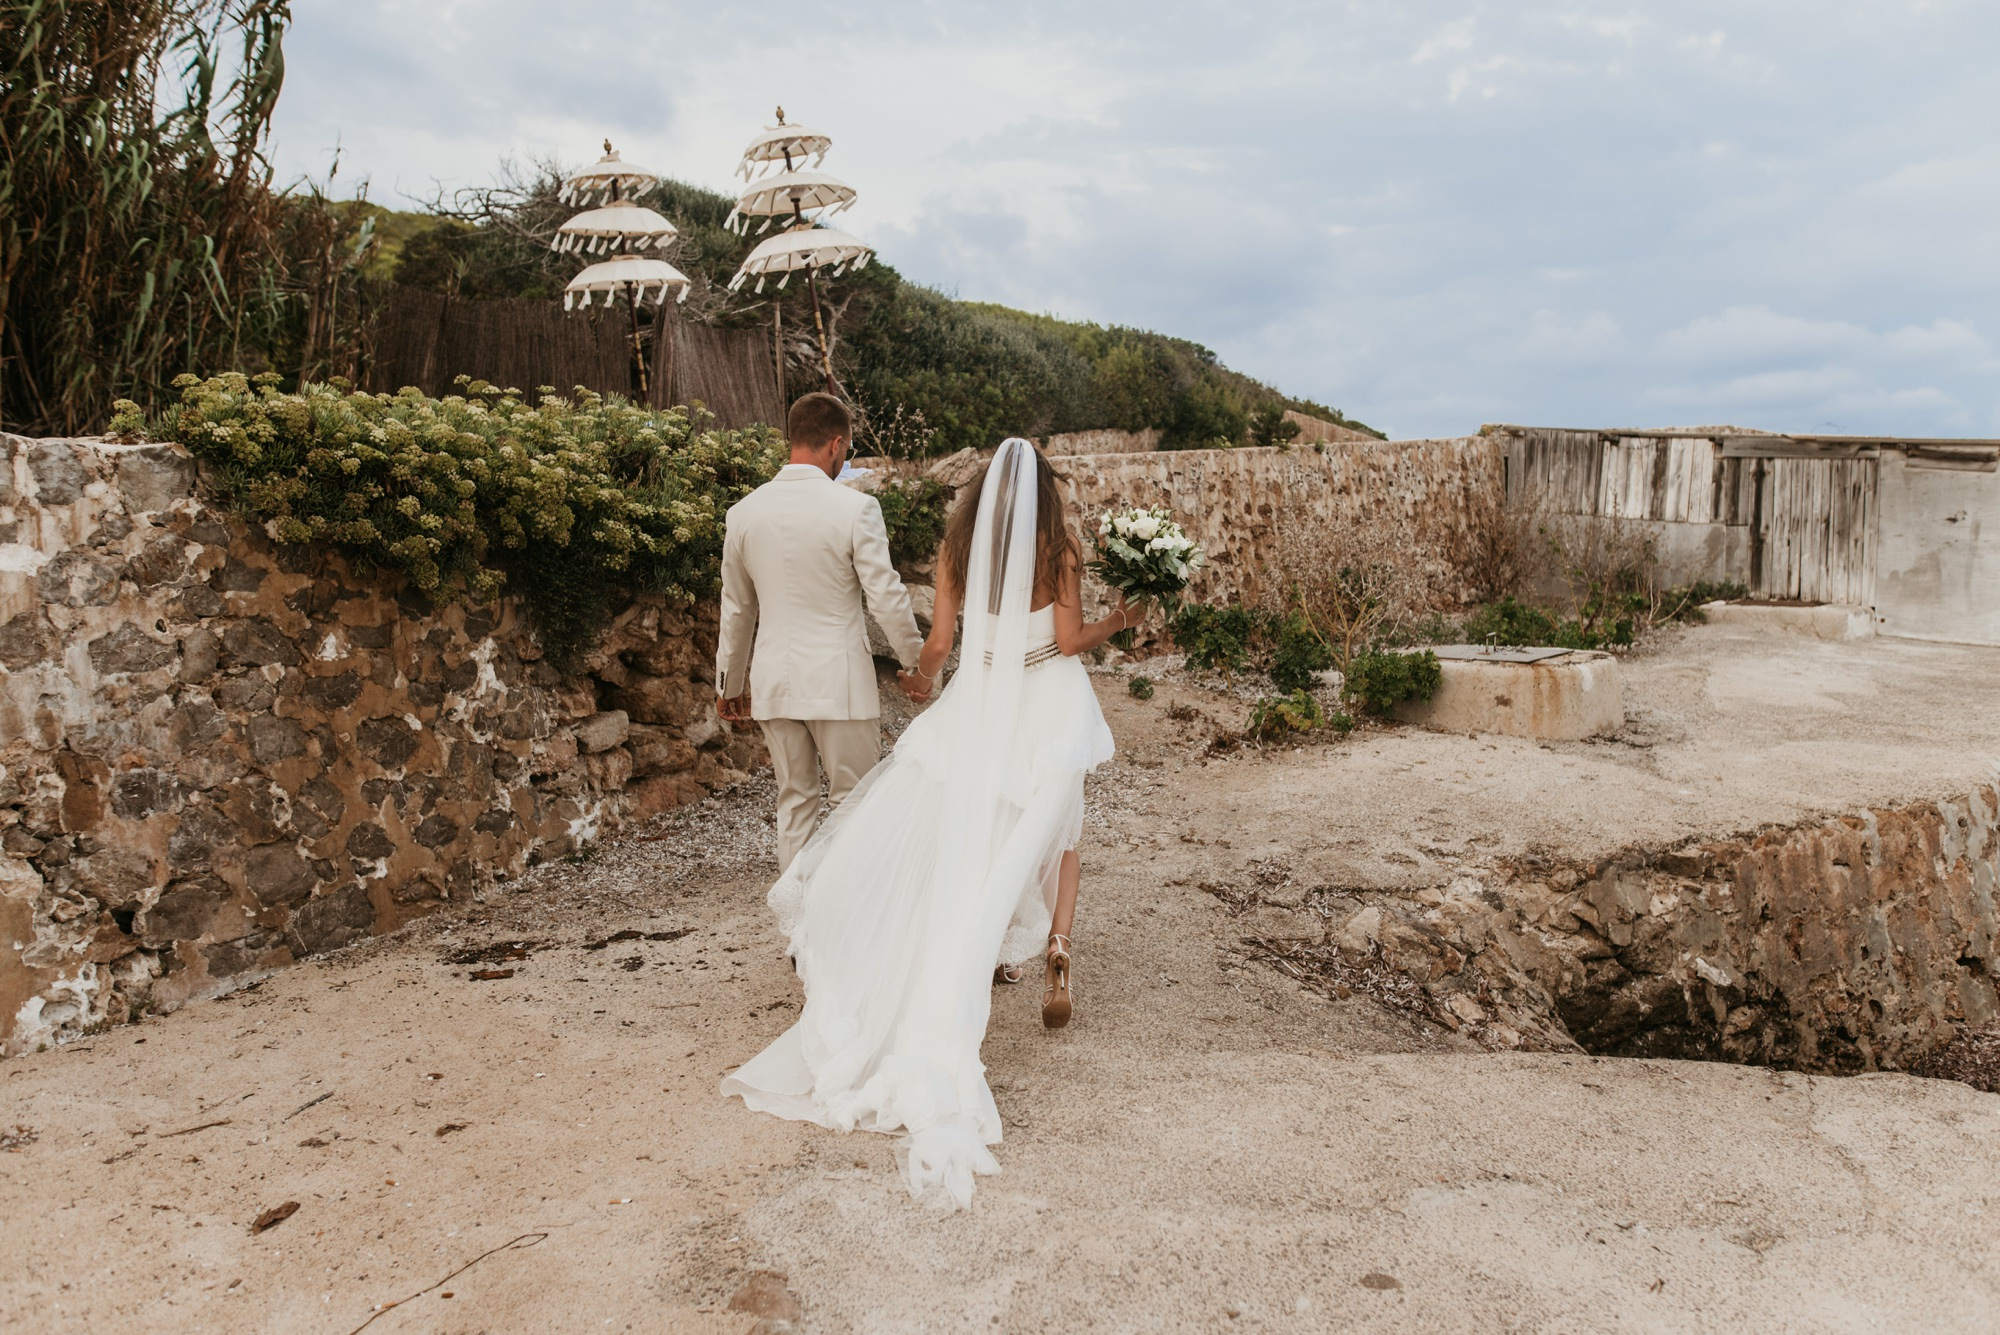 natural wedding photo destination la escollera ibiza 0091 1